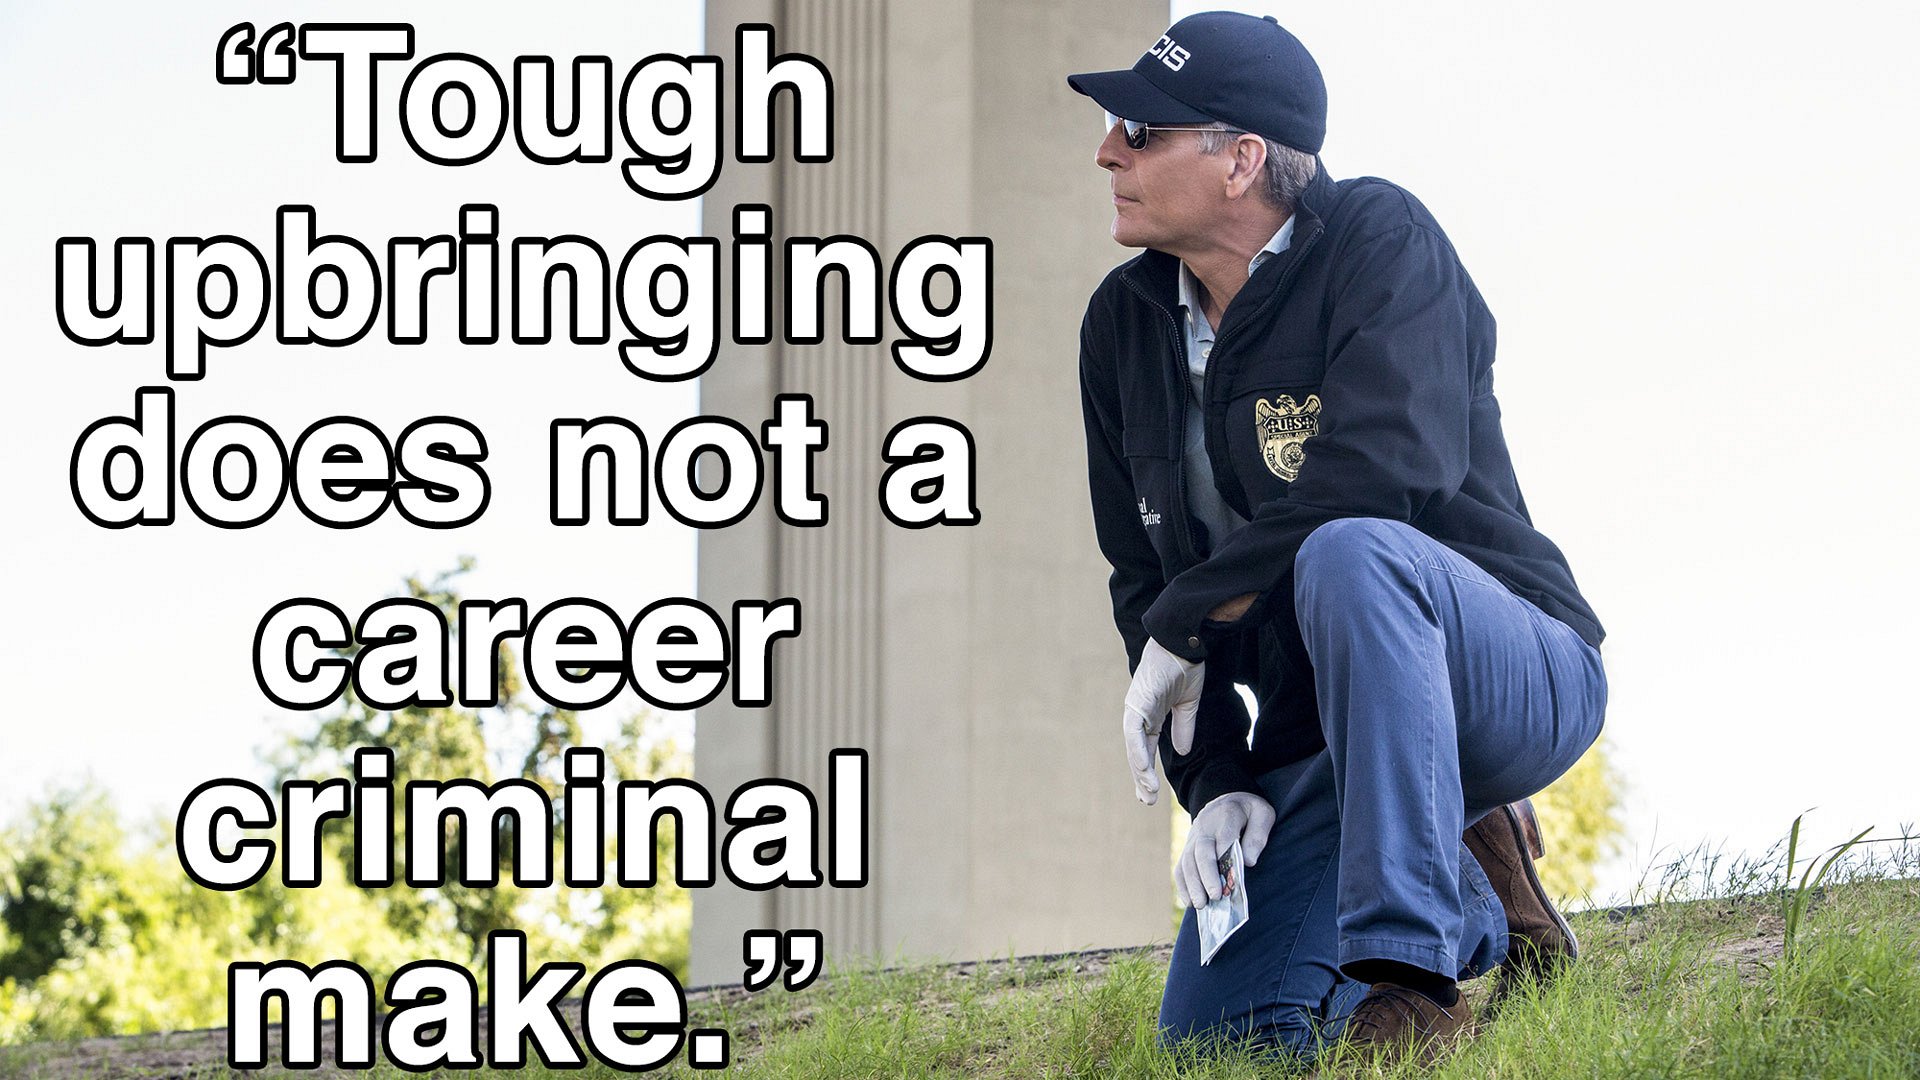 """Tough upbringing does not a career criminal make."""